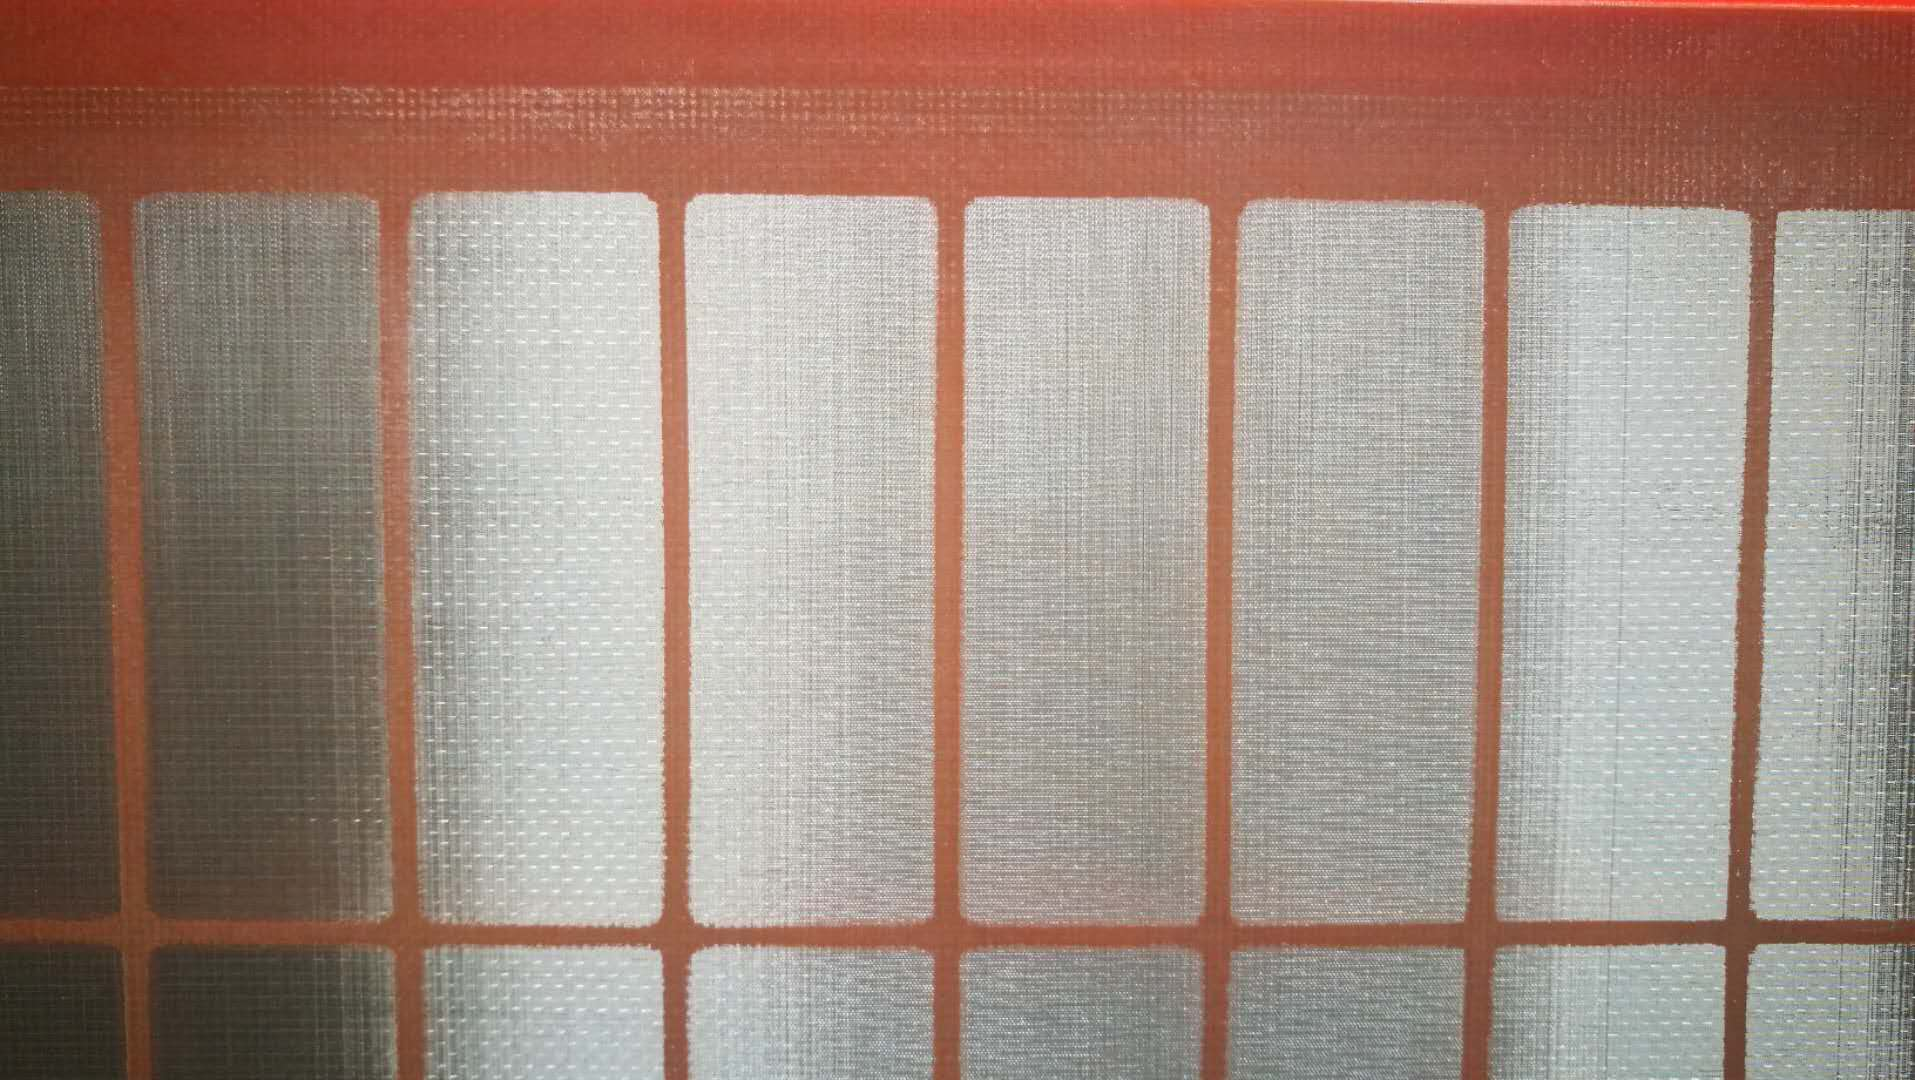 Three batches of shaker screens are to be delivered